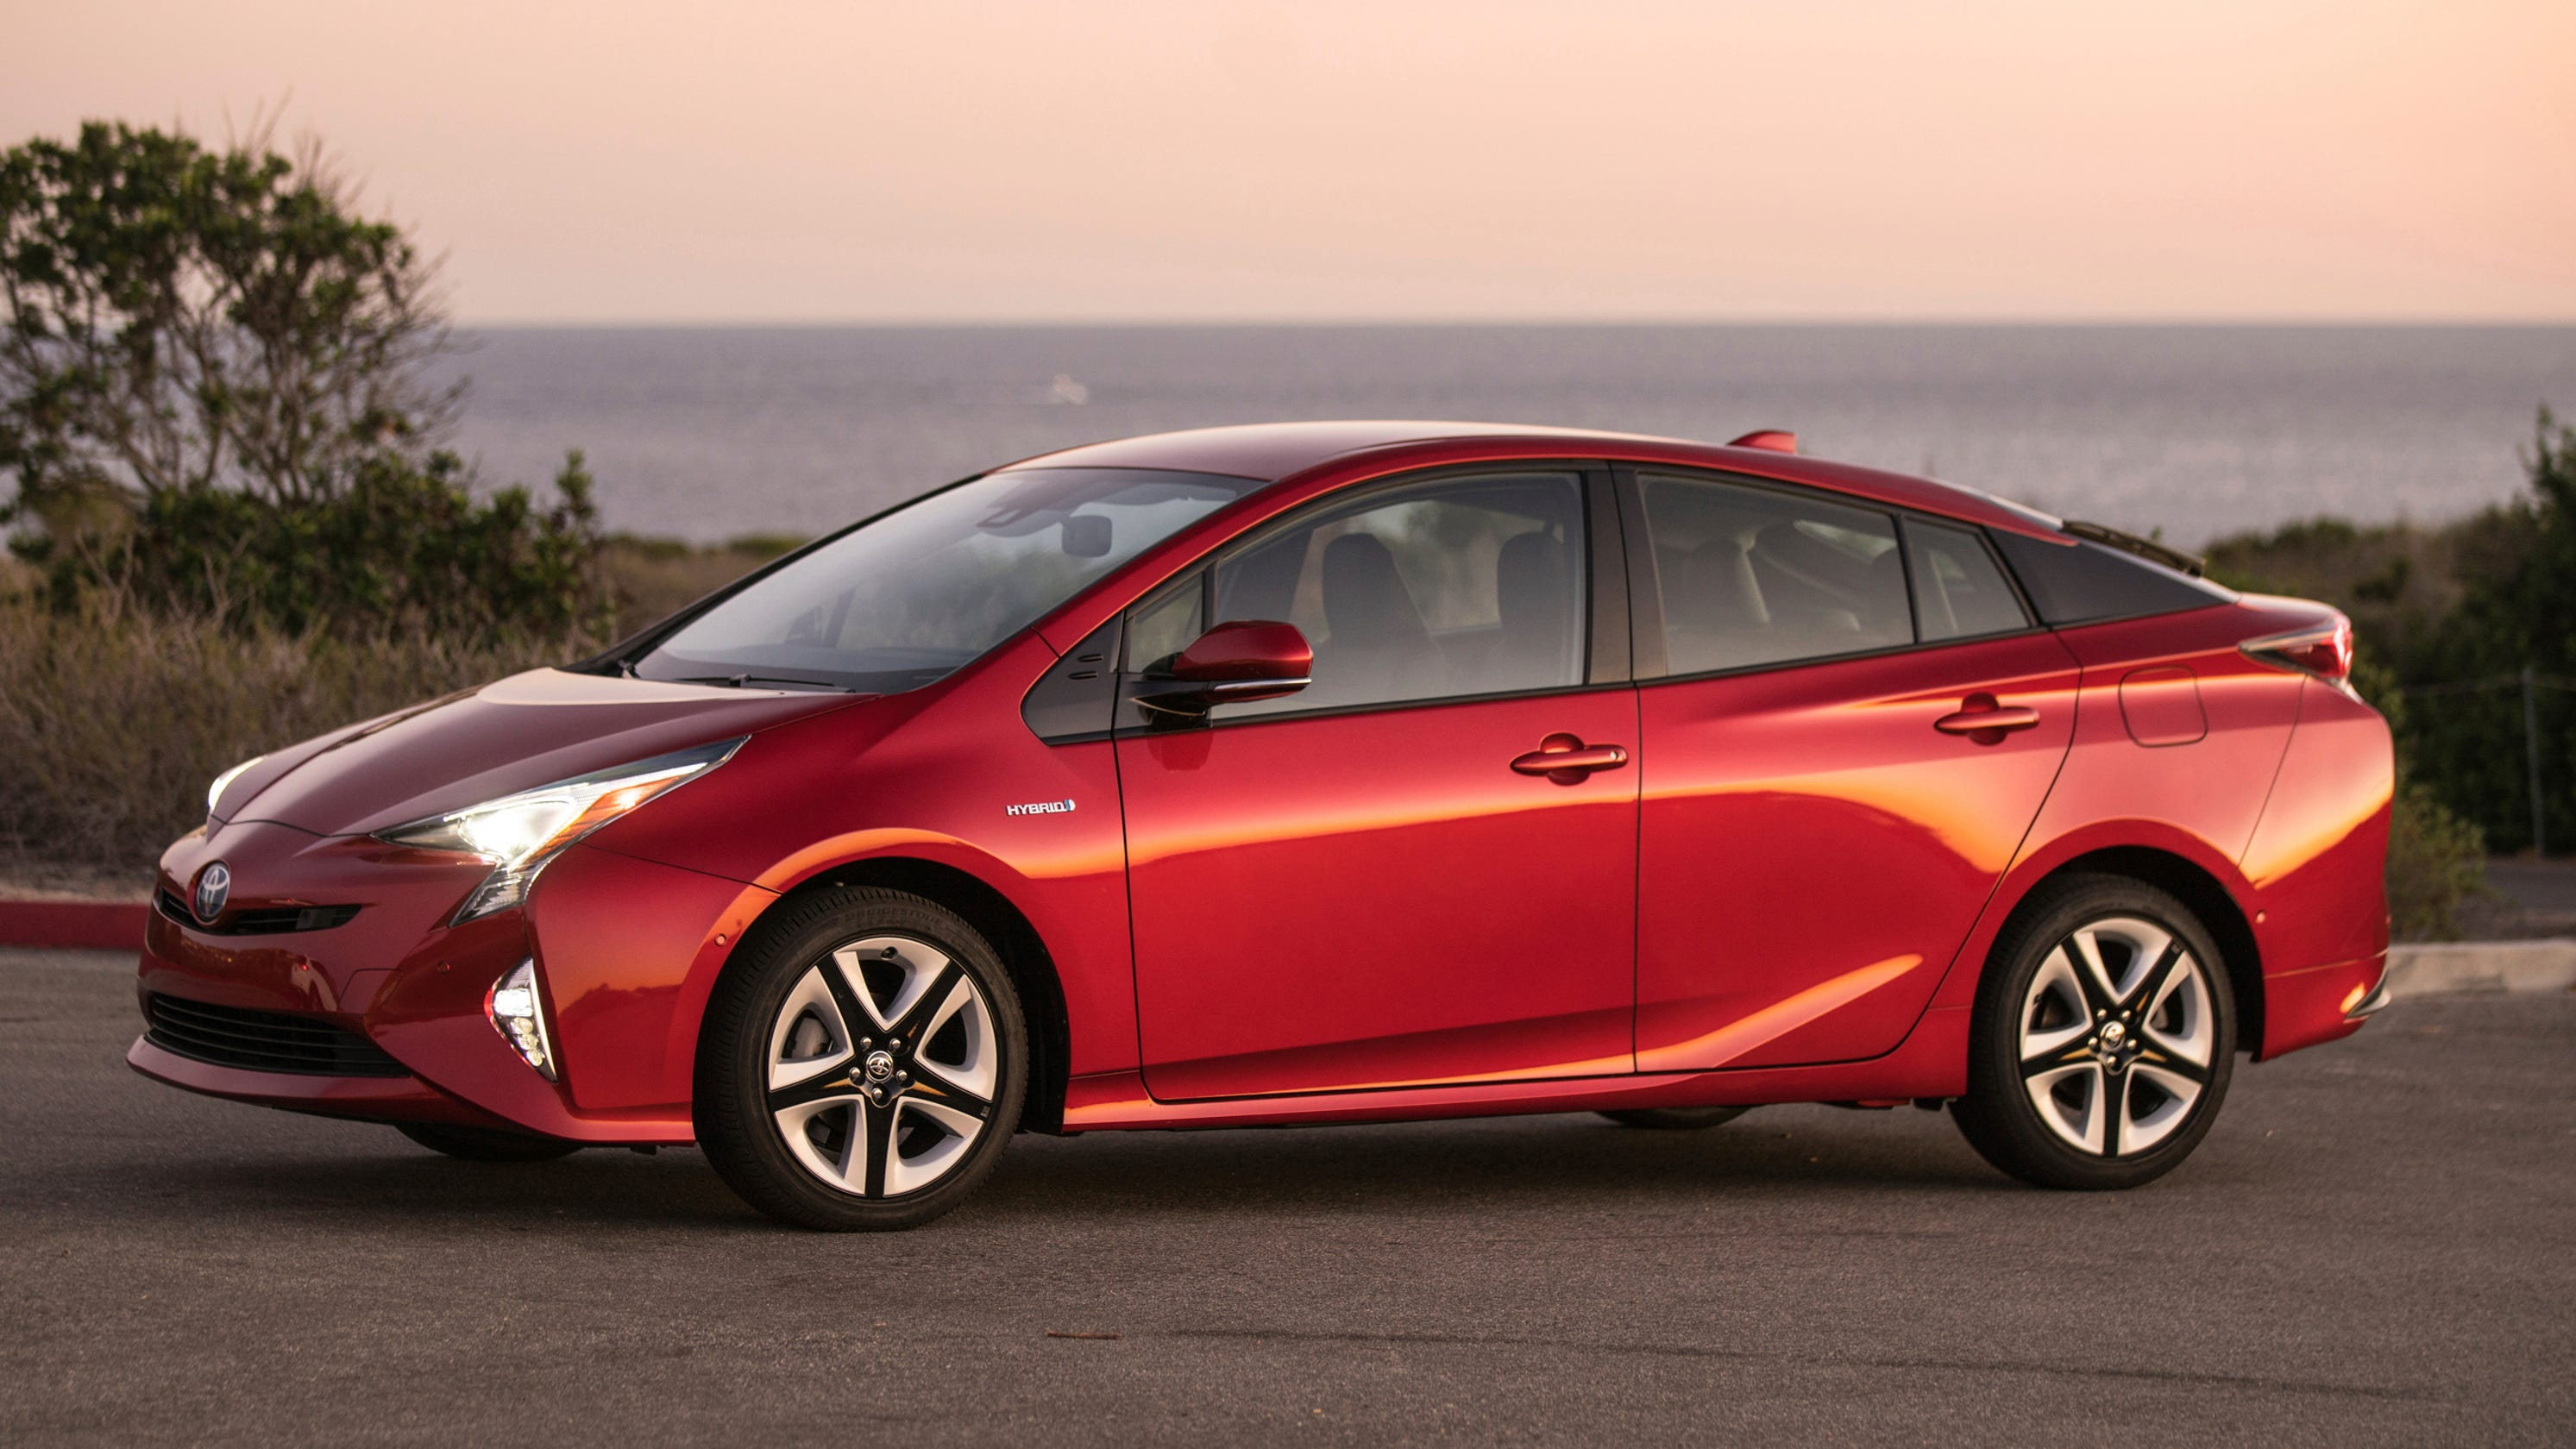 Toyota Recalls Prius To Fix Defect That Could Trigger Fires Automotive Wire Harness Manufacturers Usa